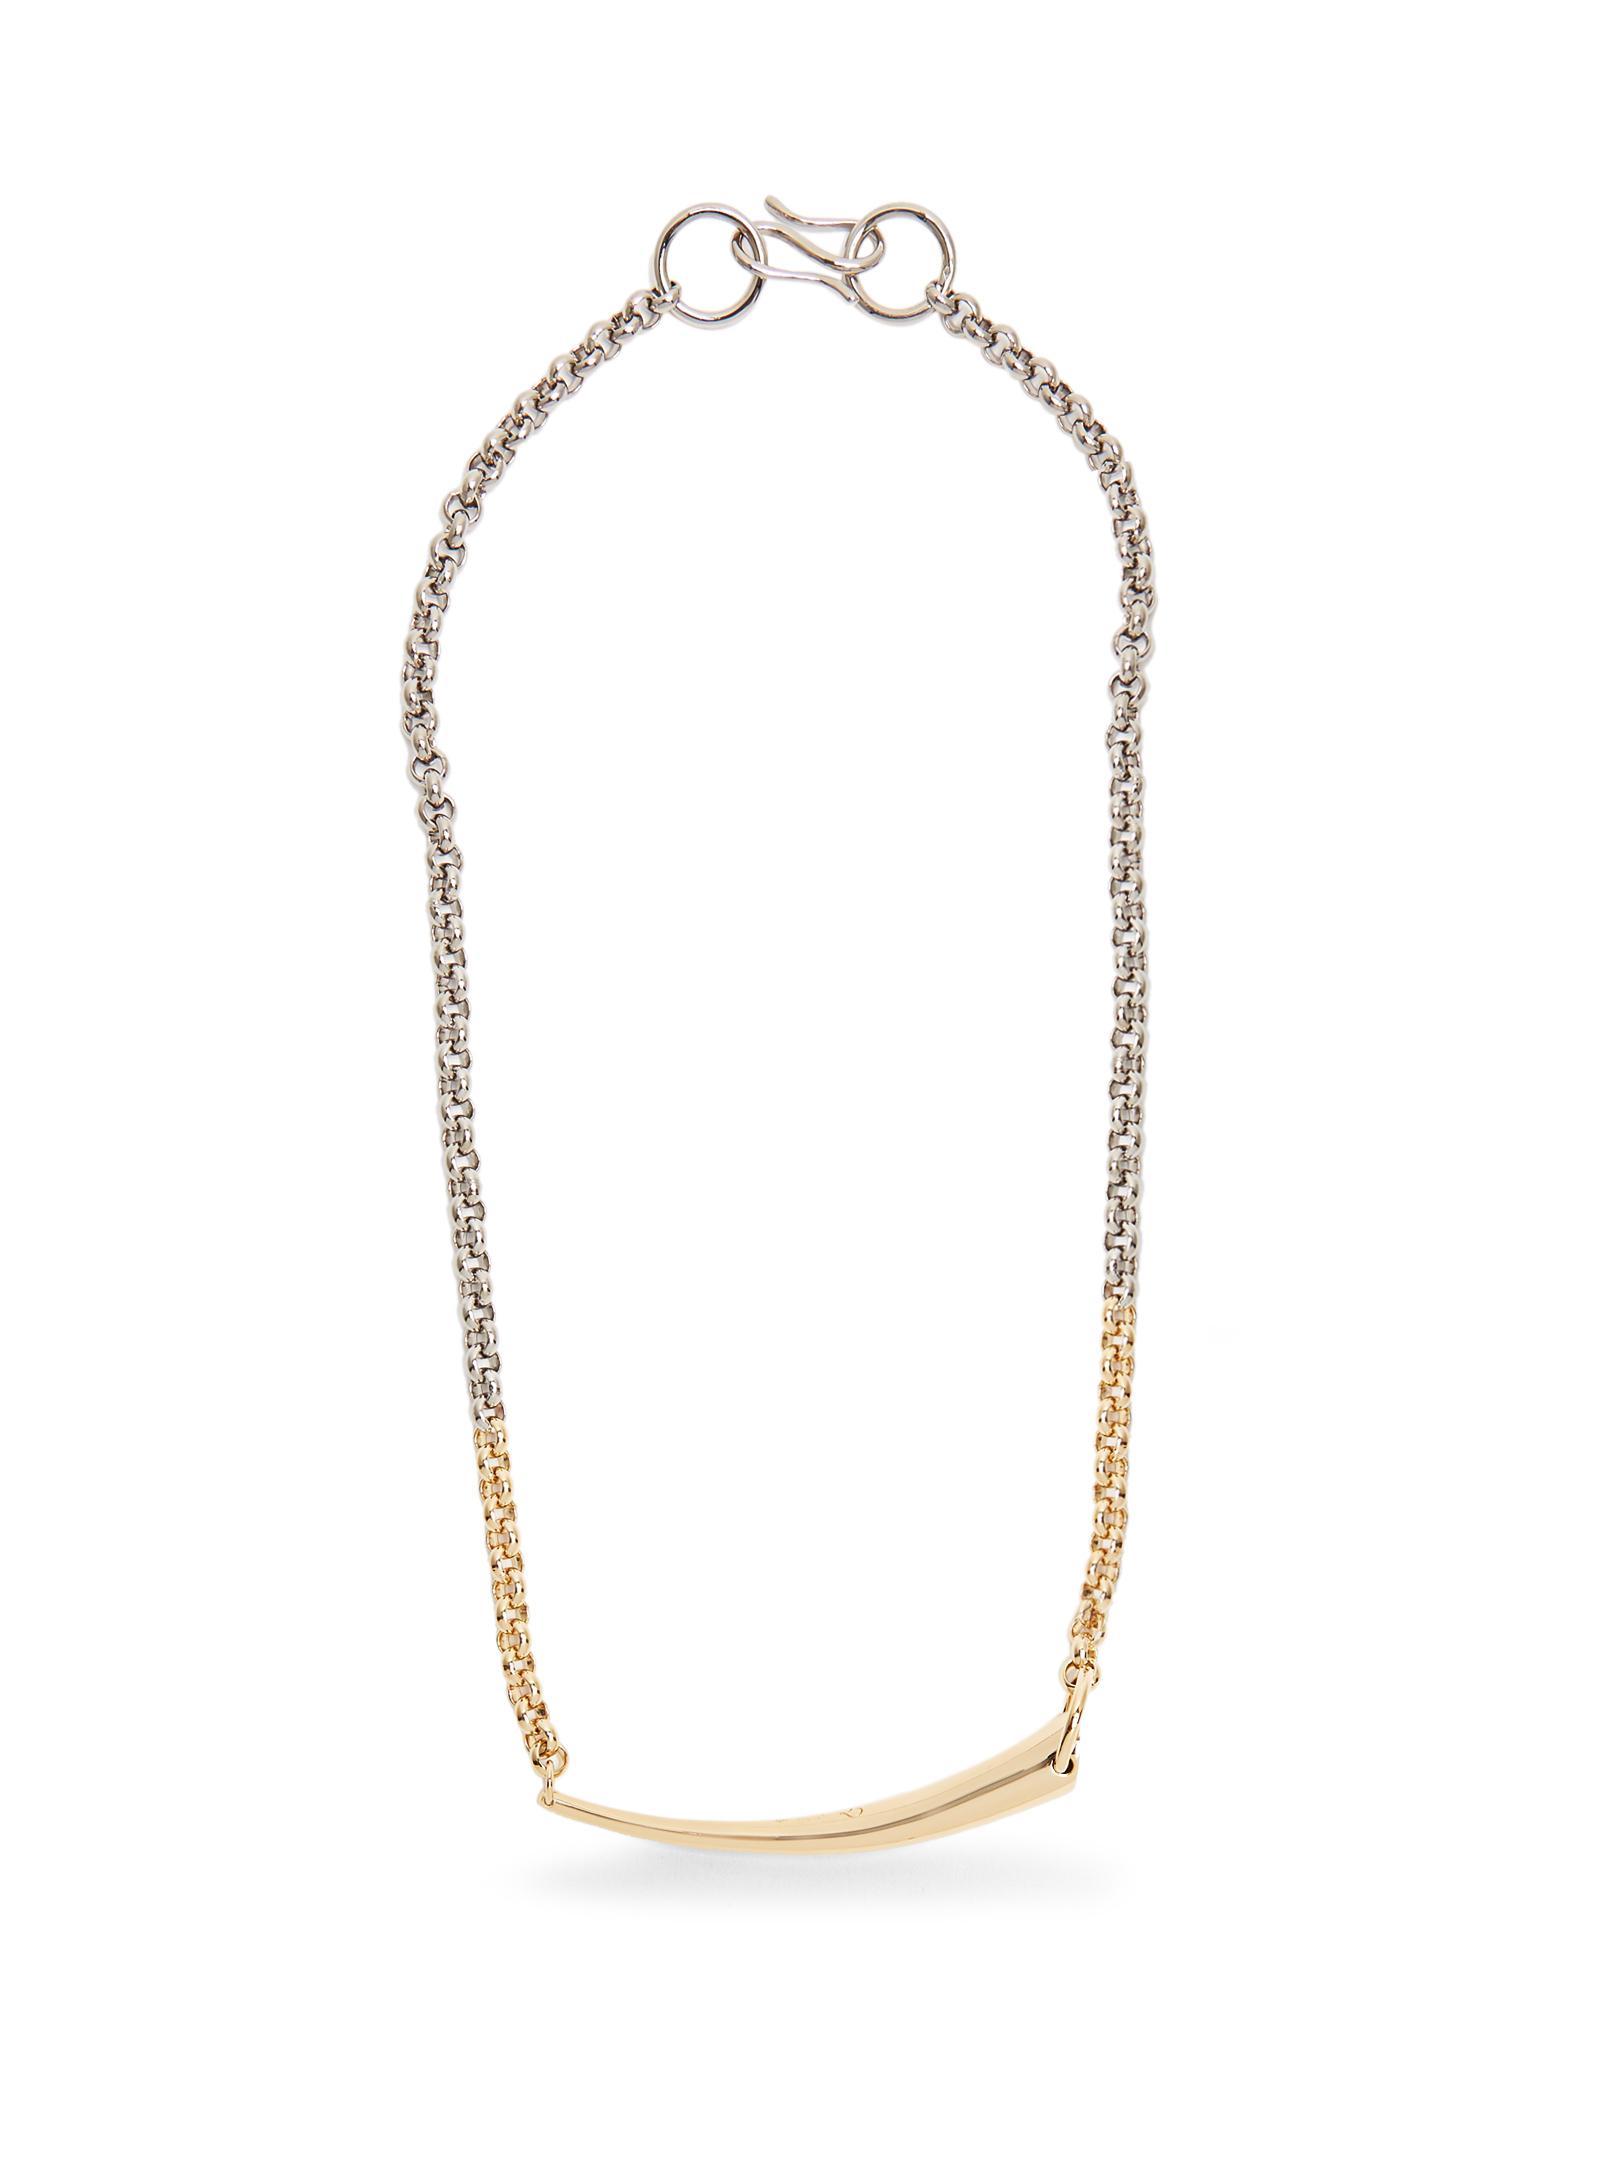 Charlotte Chesnais Alki Silver & Gold-plated Necklace in Metallic